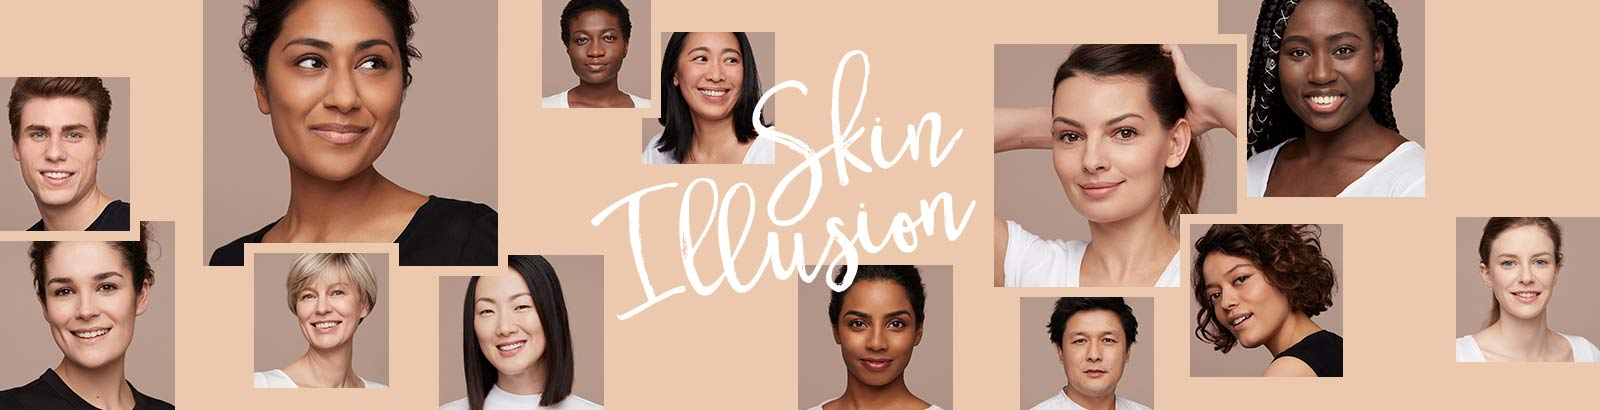 New Skin Illusion. Clarins' first serum foundation creates a luminous, bare skin feel. Ideal for all ages, all skin tones.